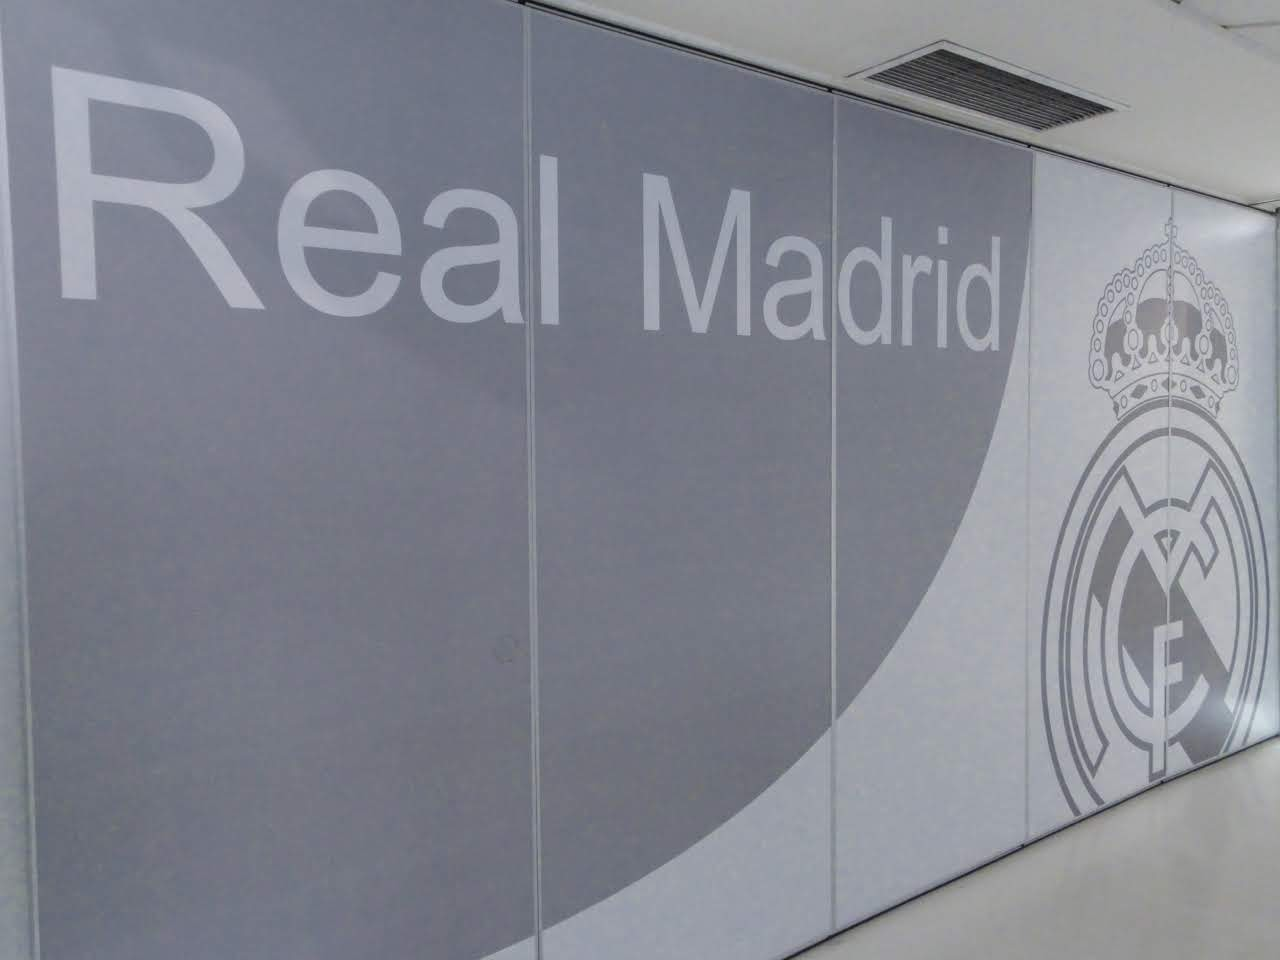 A large padded wall featuring the Real Madrid logo